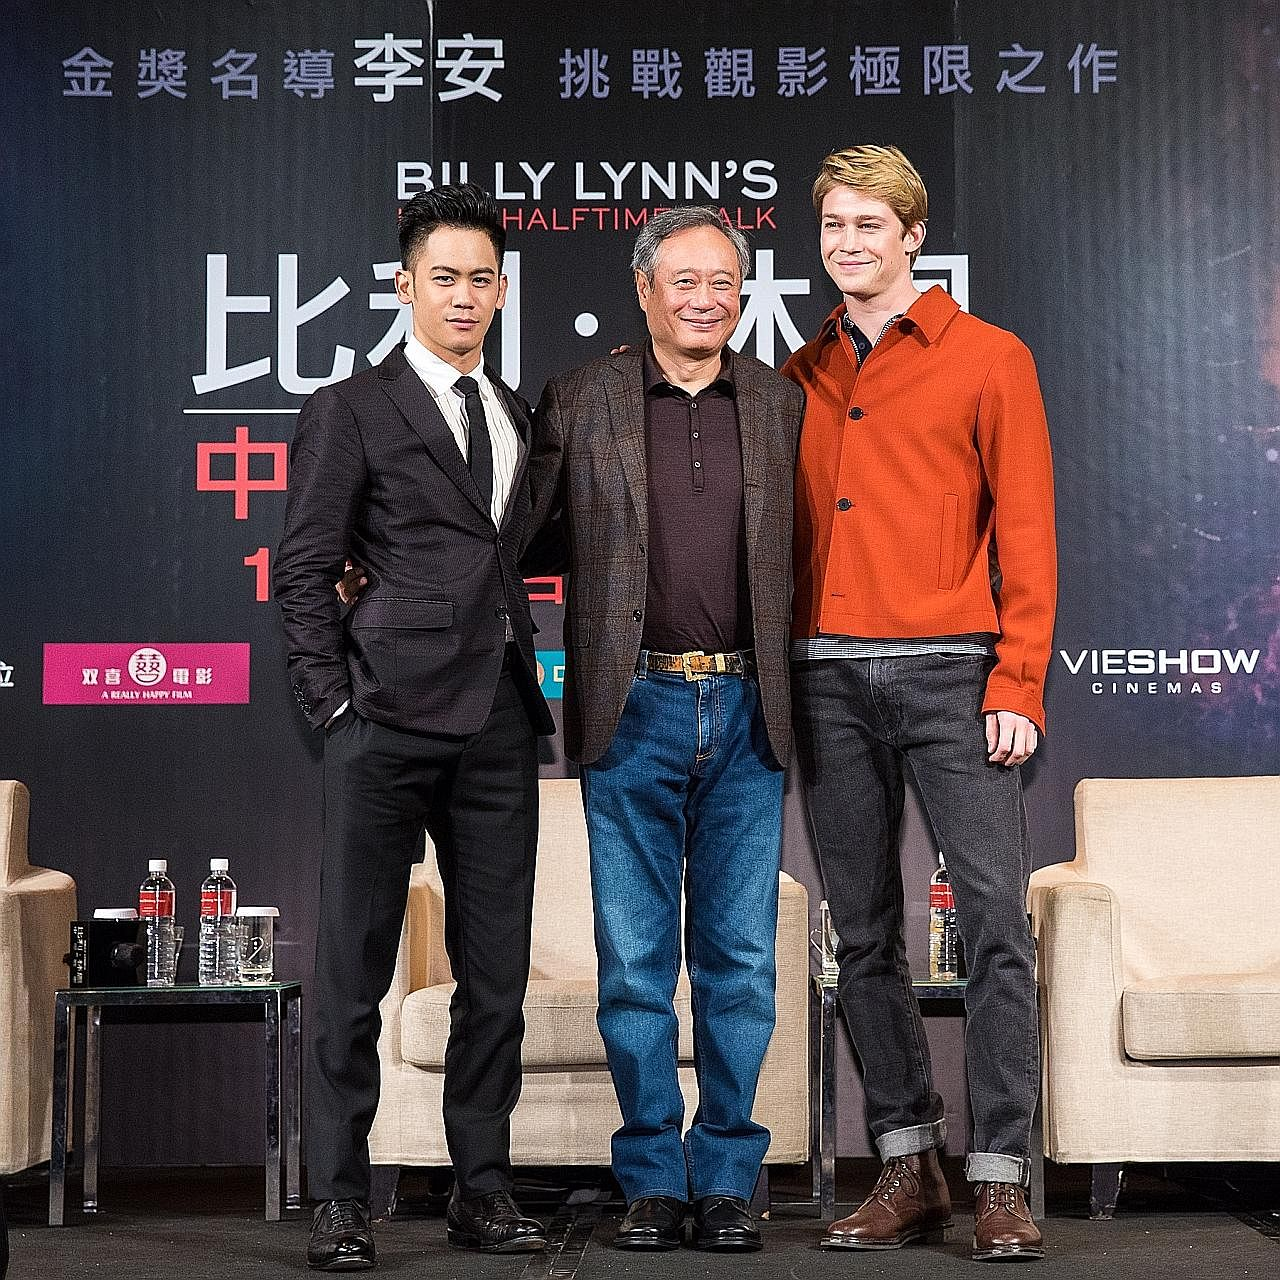 British actor Joe Alwyn (right), who makes his big-screen debut in Billy Lynn's Long Halftime Walk, is coming to terms with being an actor and also a movie star.